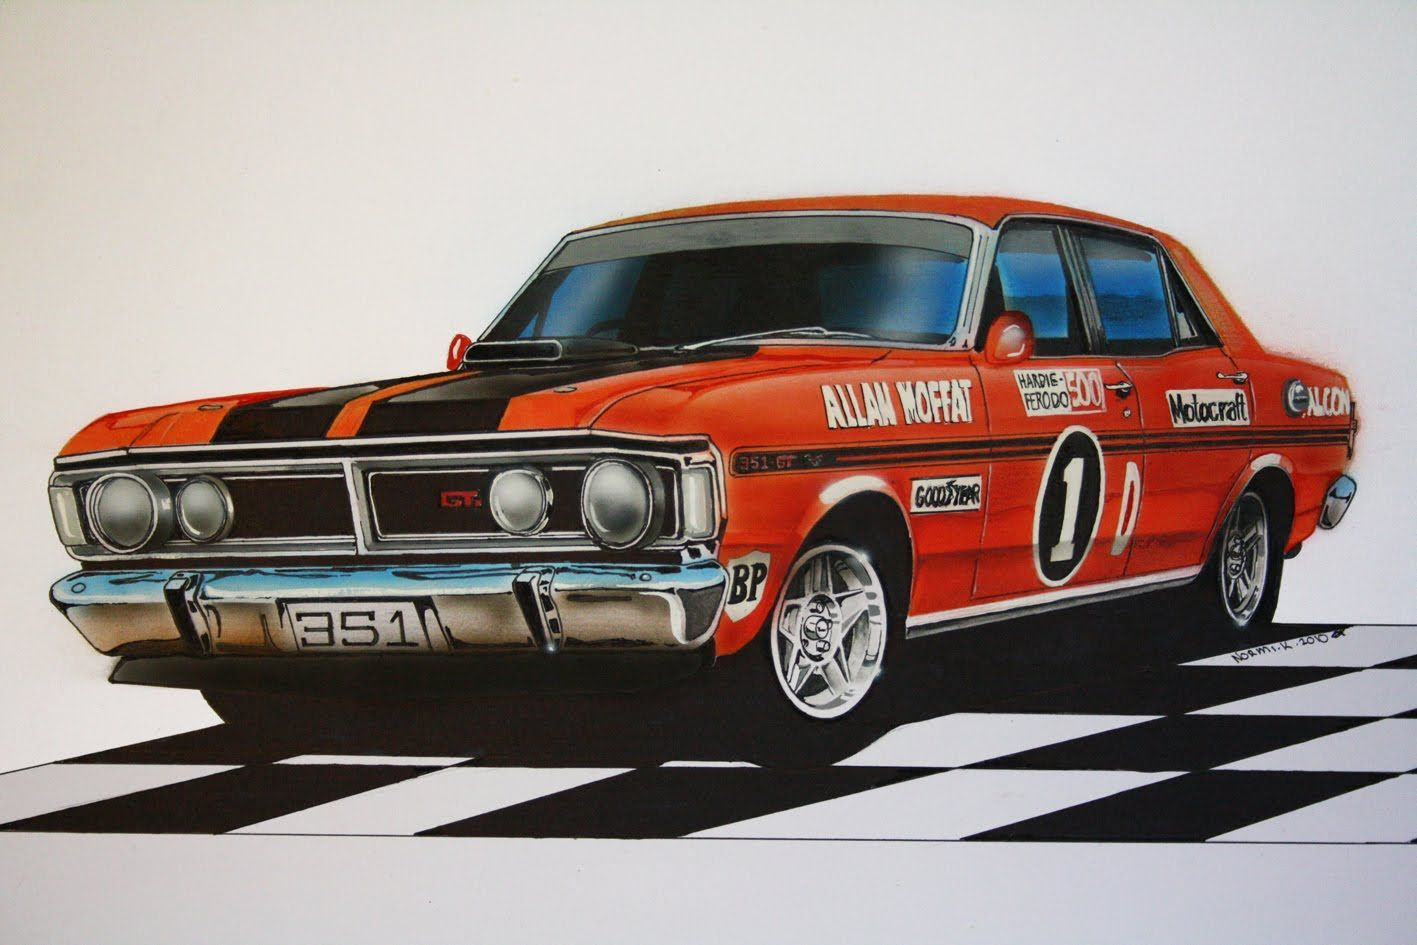 Ford Falcon Wallpapers Top Free Ford Falcon Backgrounds Wallpaperaccess